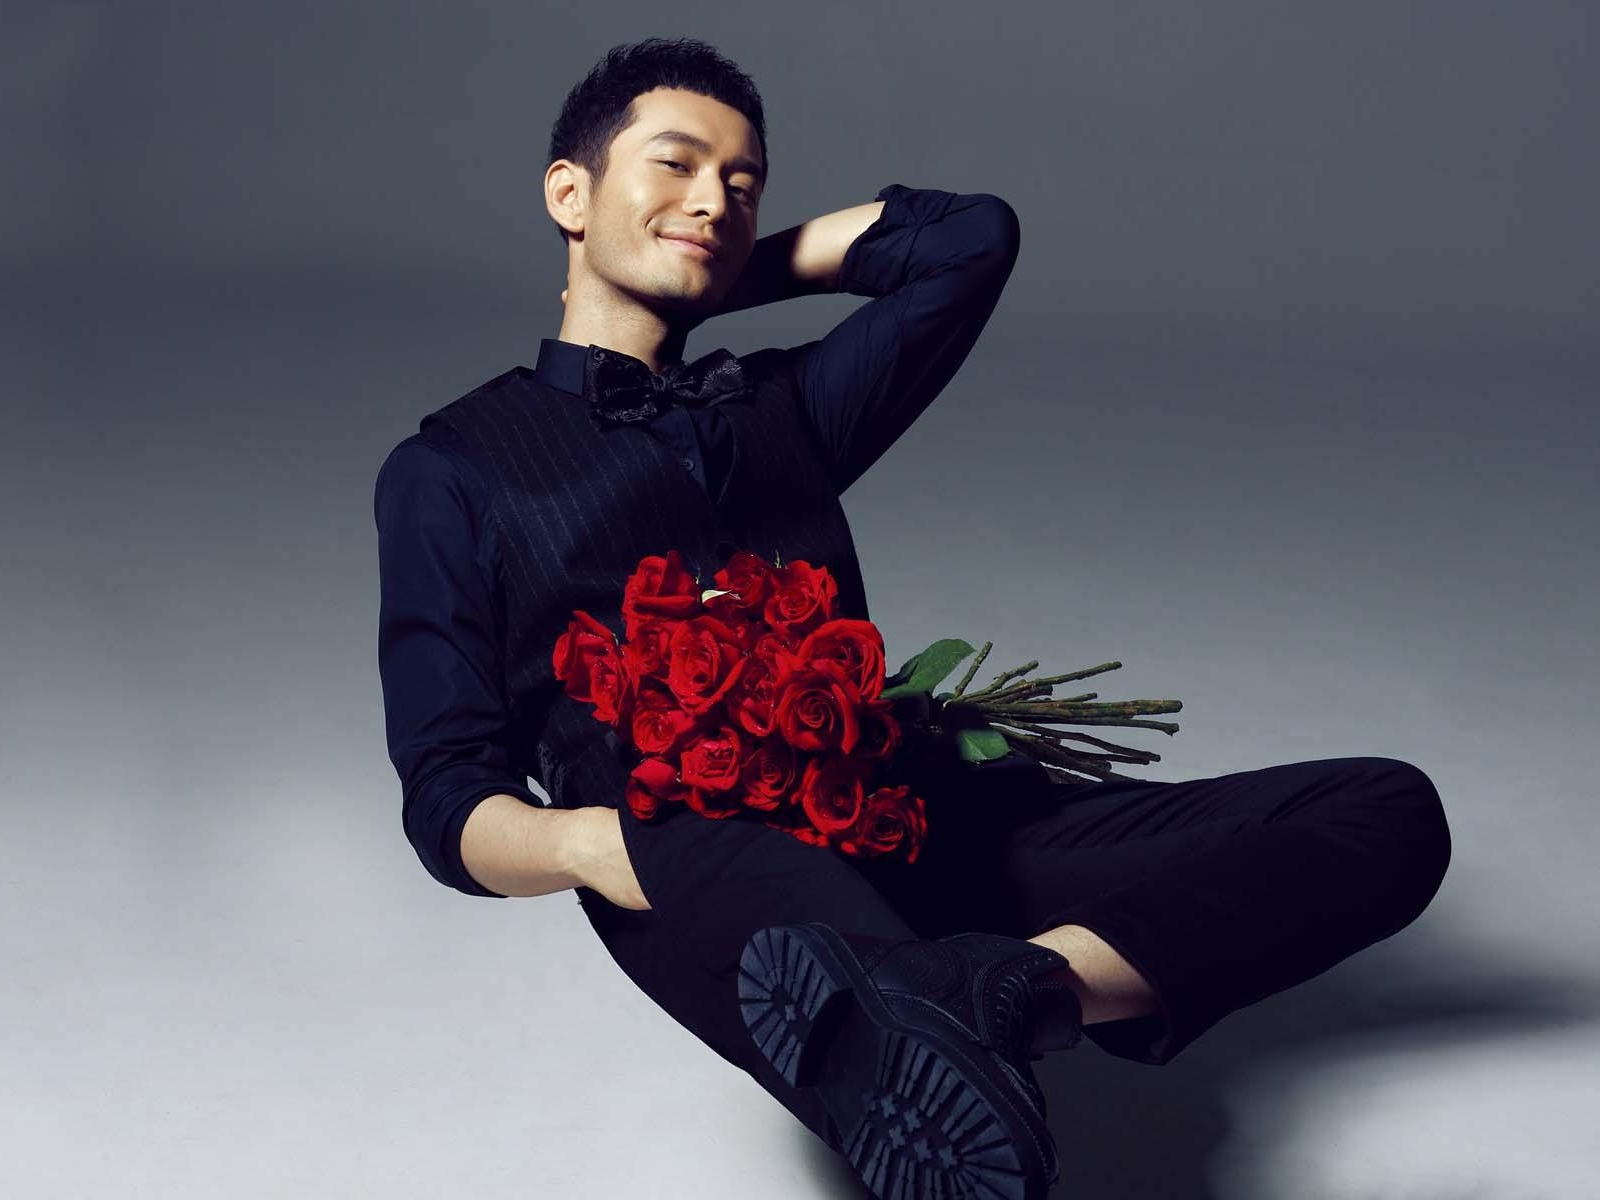 Huang Xiaoming suffered from depression in the past